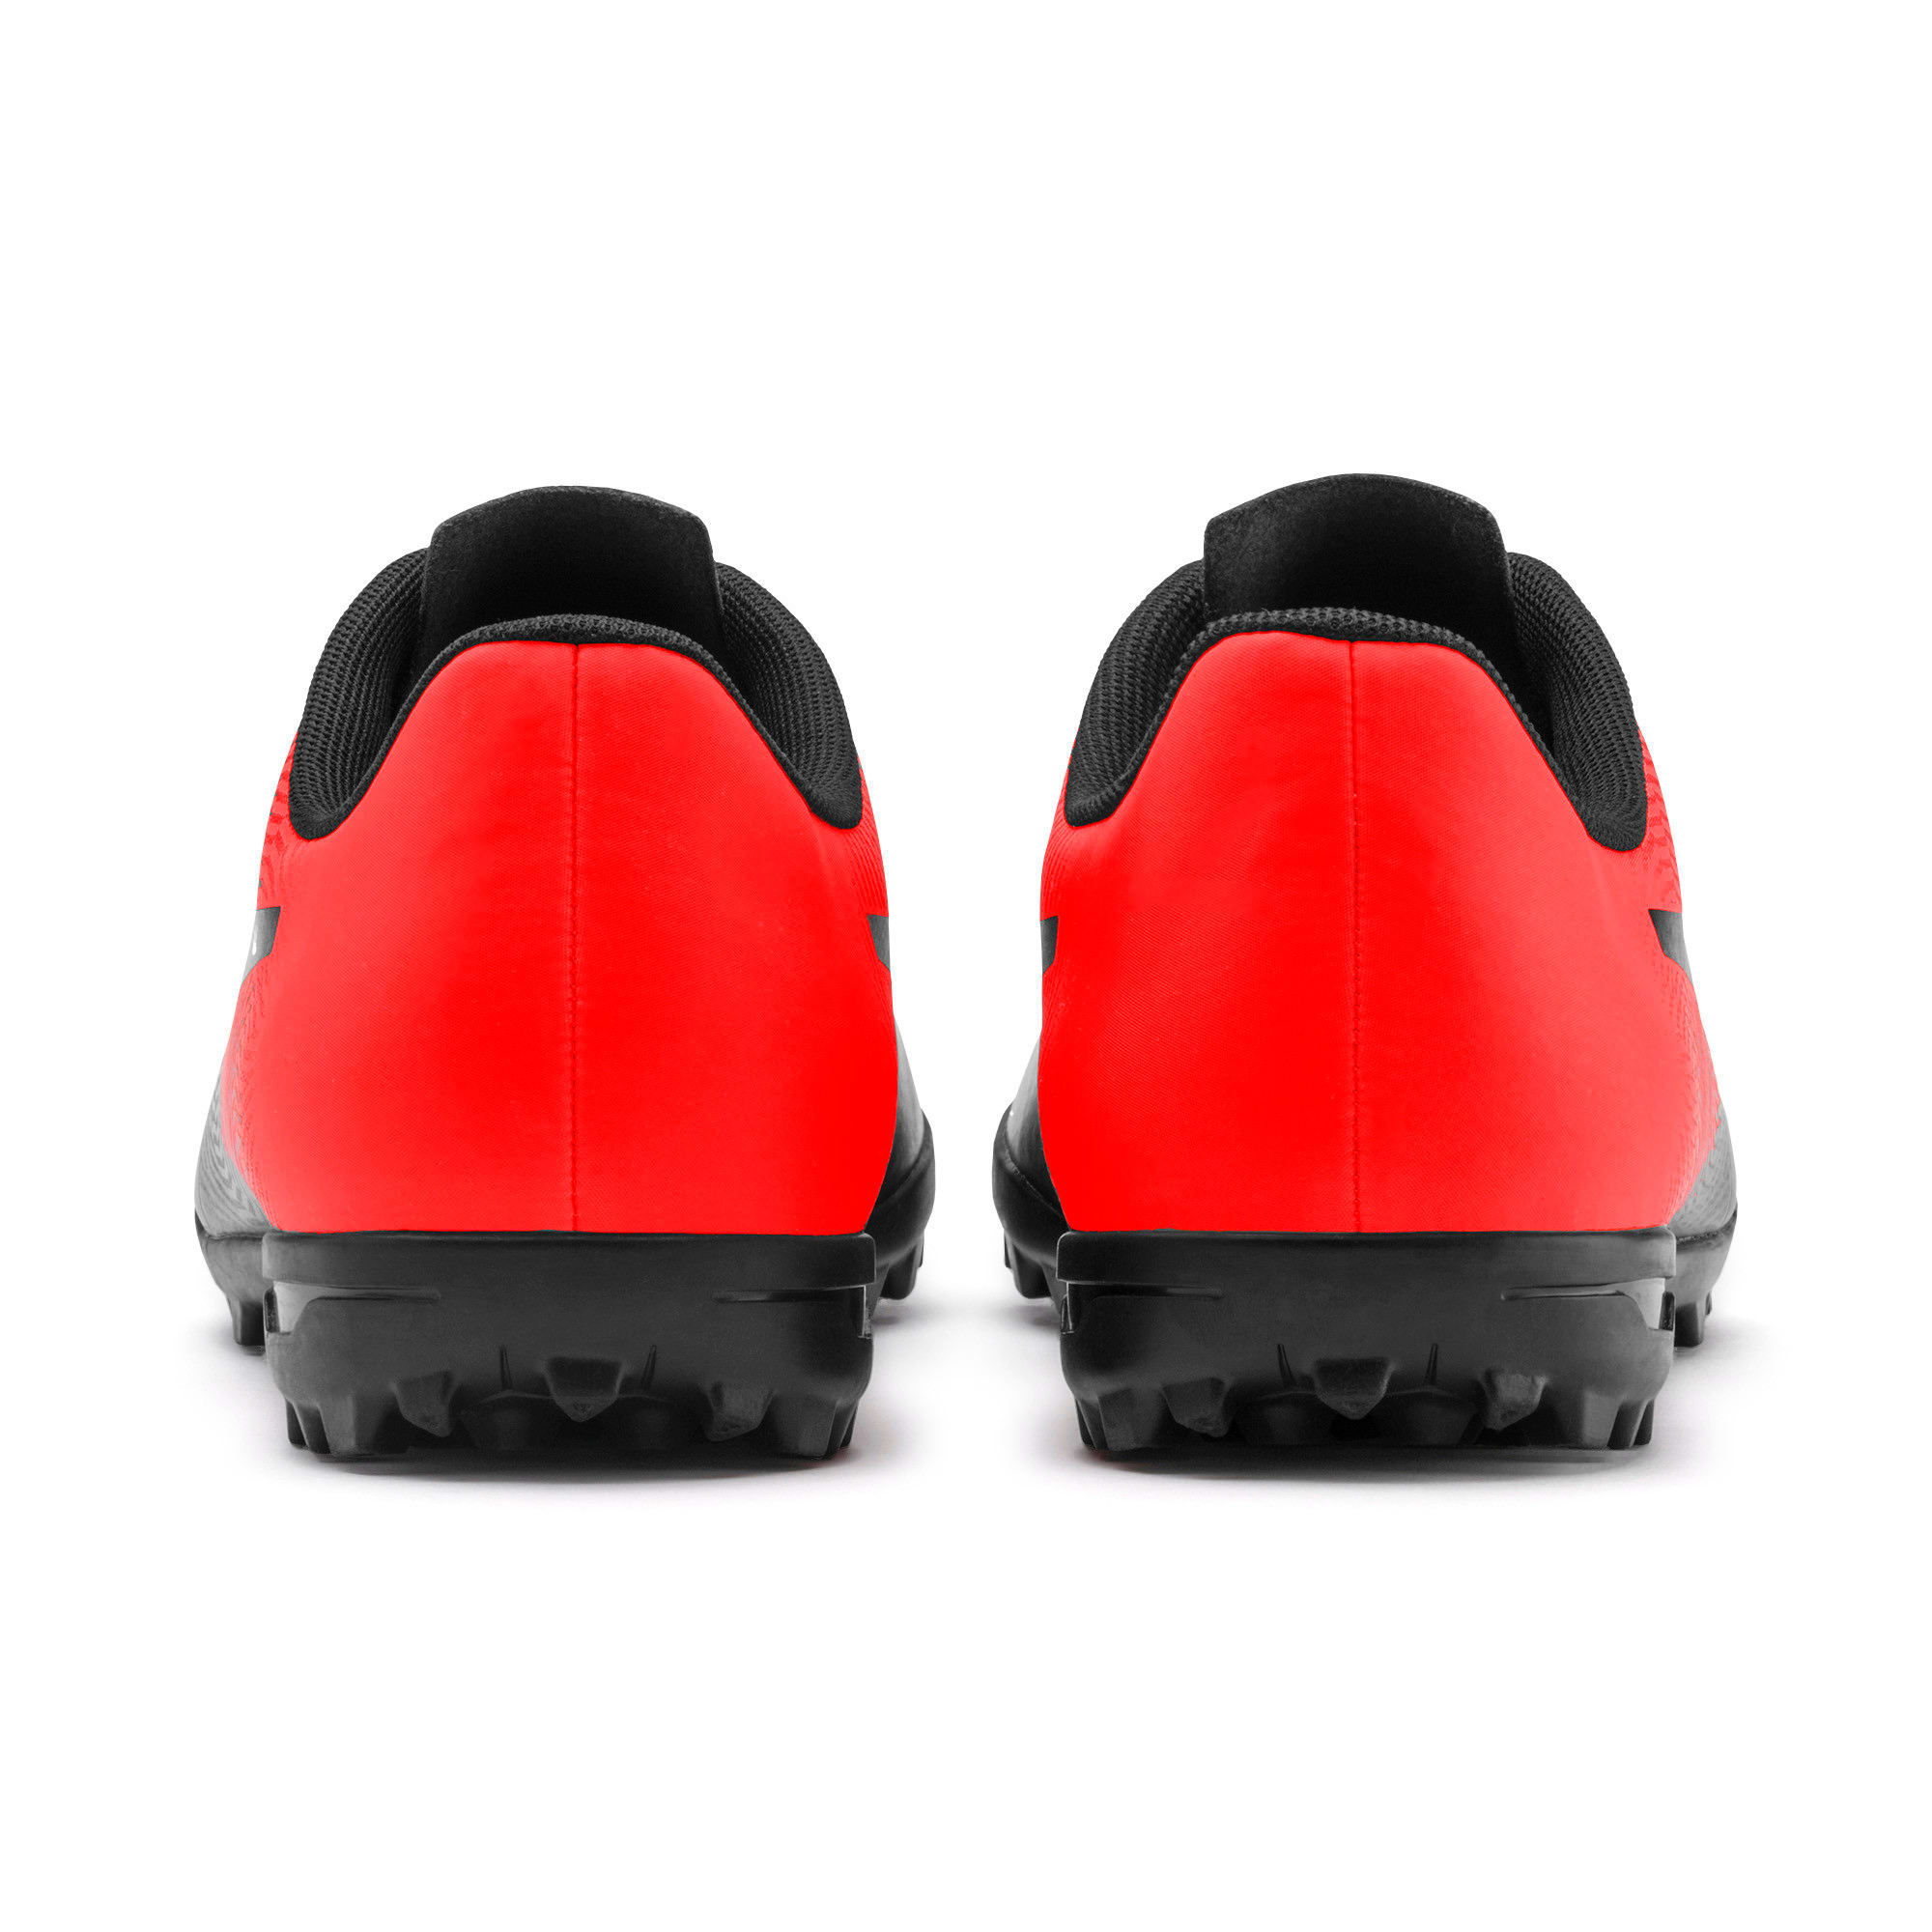 Thumbnail 4 of PUMA Spirit II TT Men's Soccer Shoes, Puma Black-Nrgy Red, medium